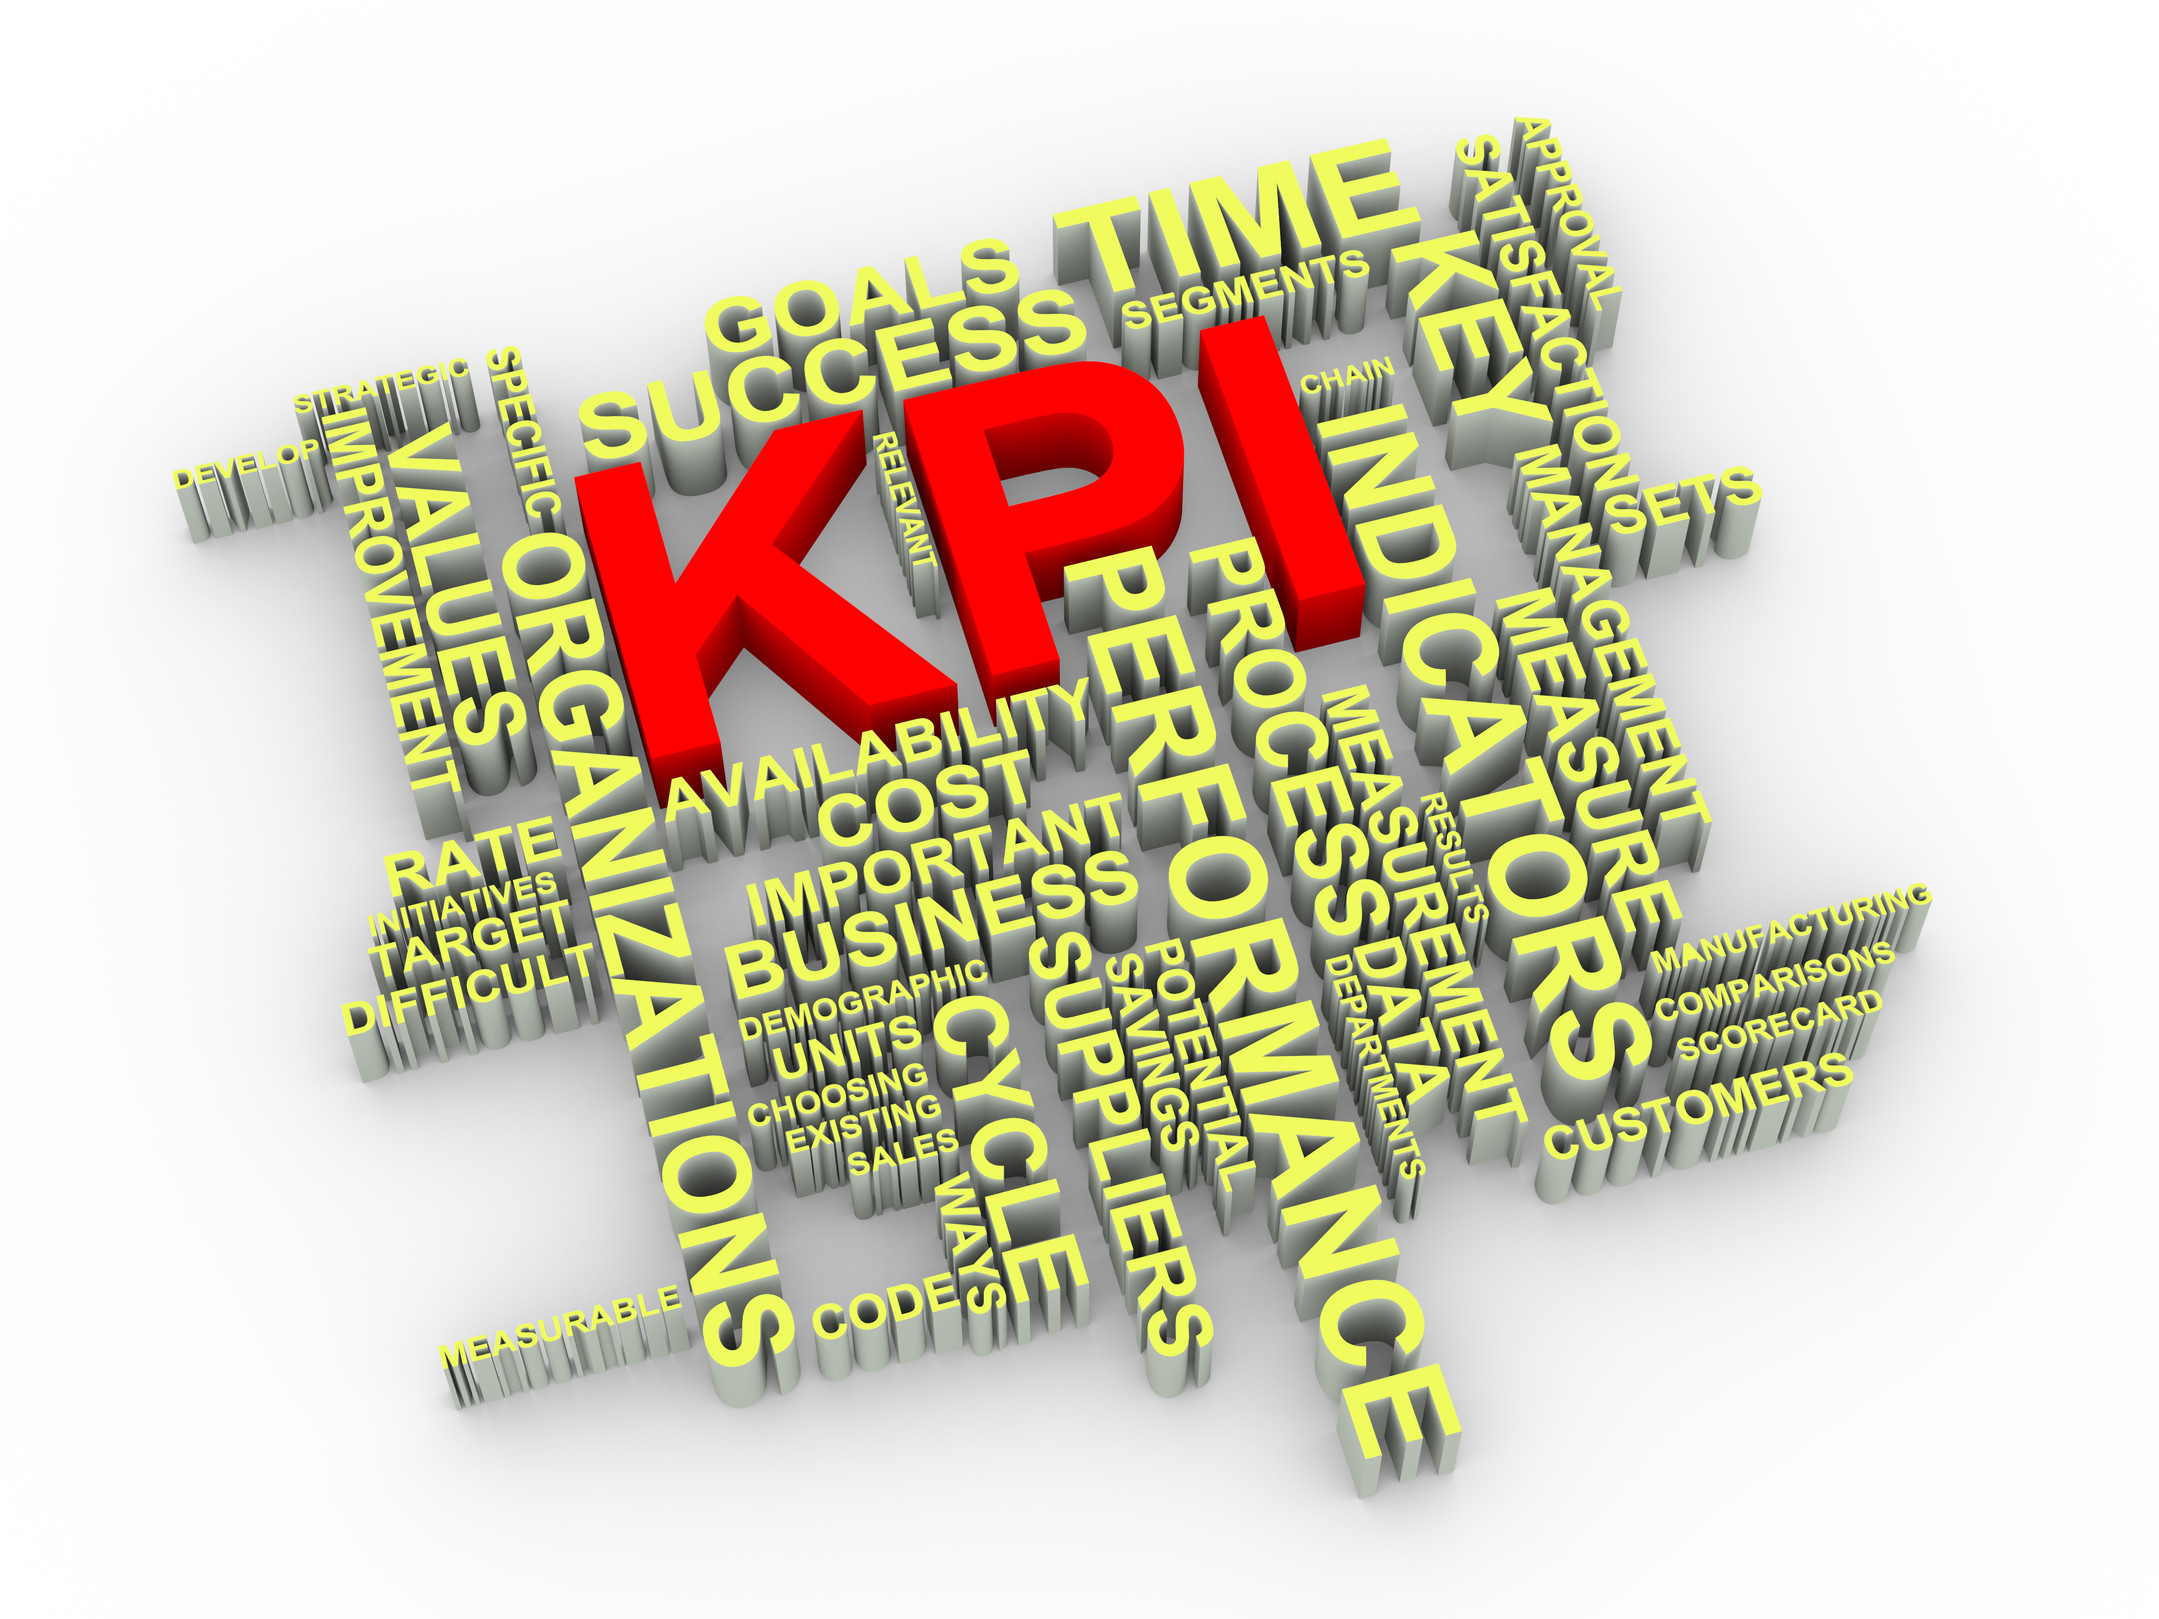 Wholesaling Houses KPI's